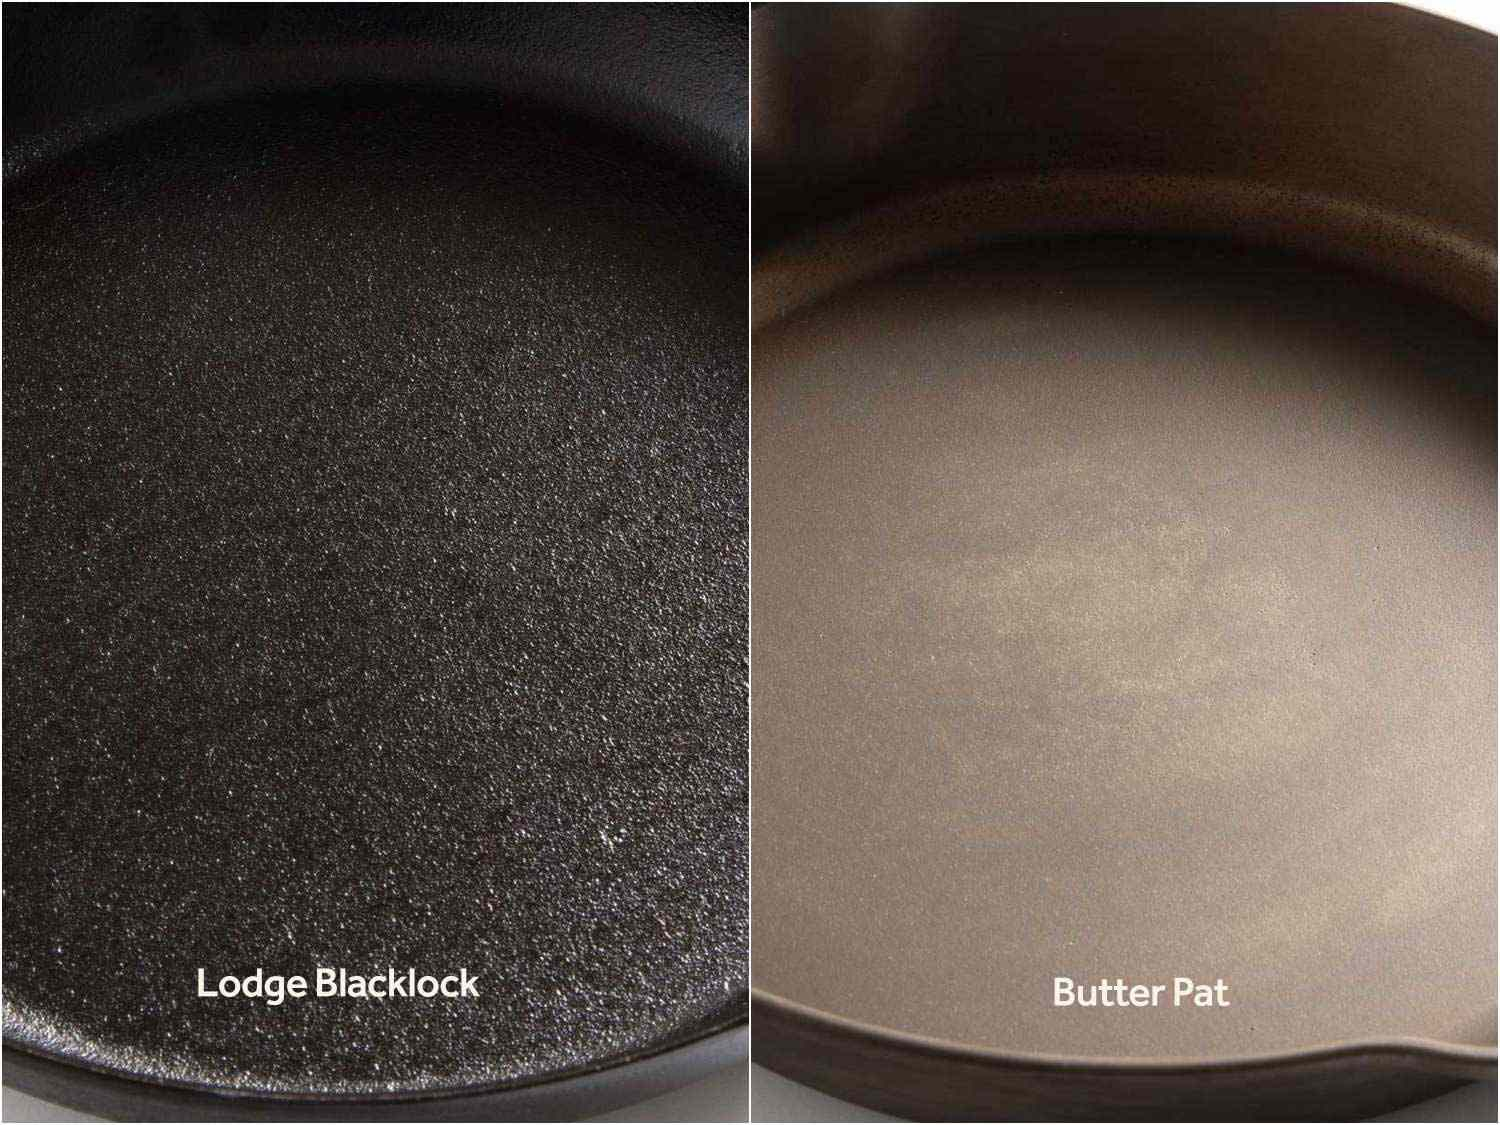 A comparison of the surfaces of two cast iron skillets shows both a difference in surface texture (the Lodge rougher, the Butter Pat smoother) as well as differences in degree of seasoning (the Lodge is a deeper black, suggesting more seasoning, while the Butter Pat has more of a brown tint, suggesting less).